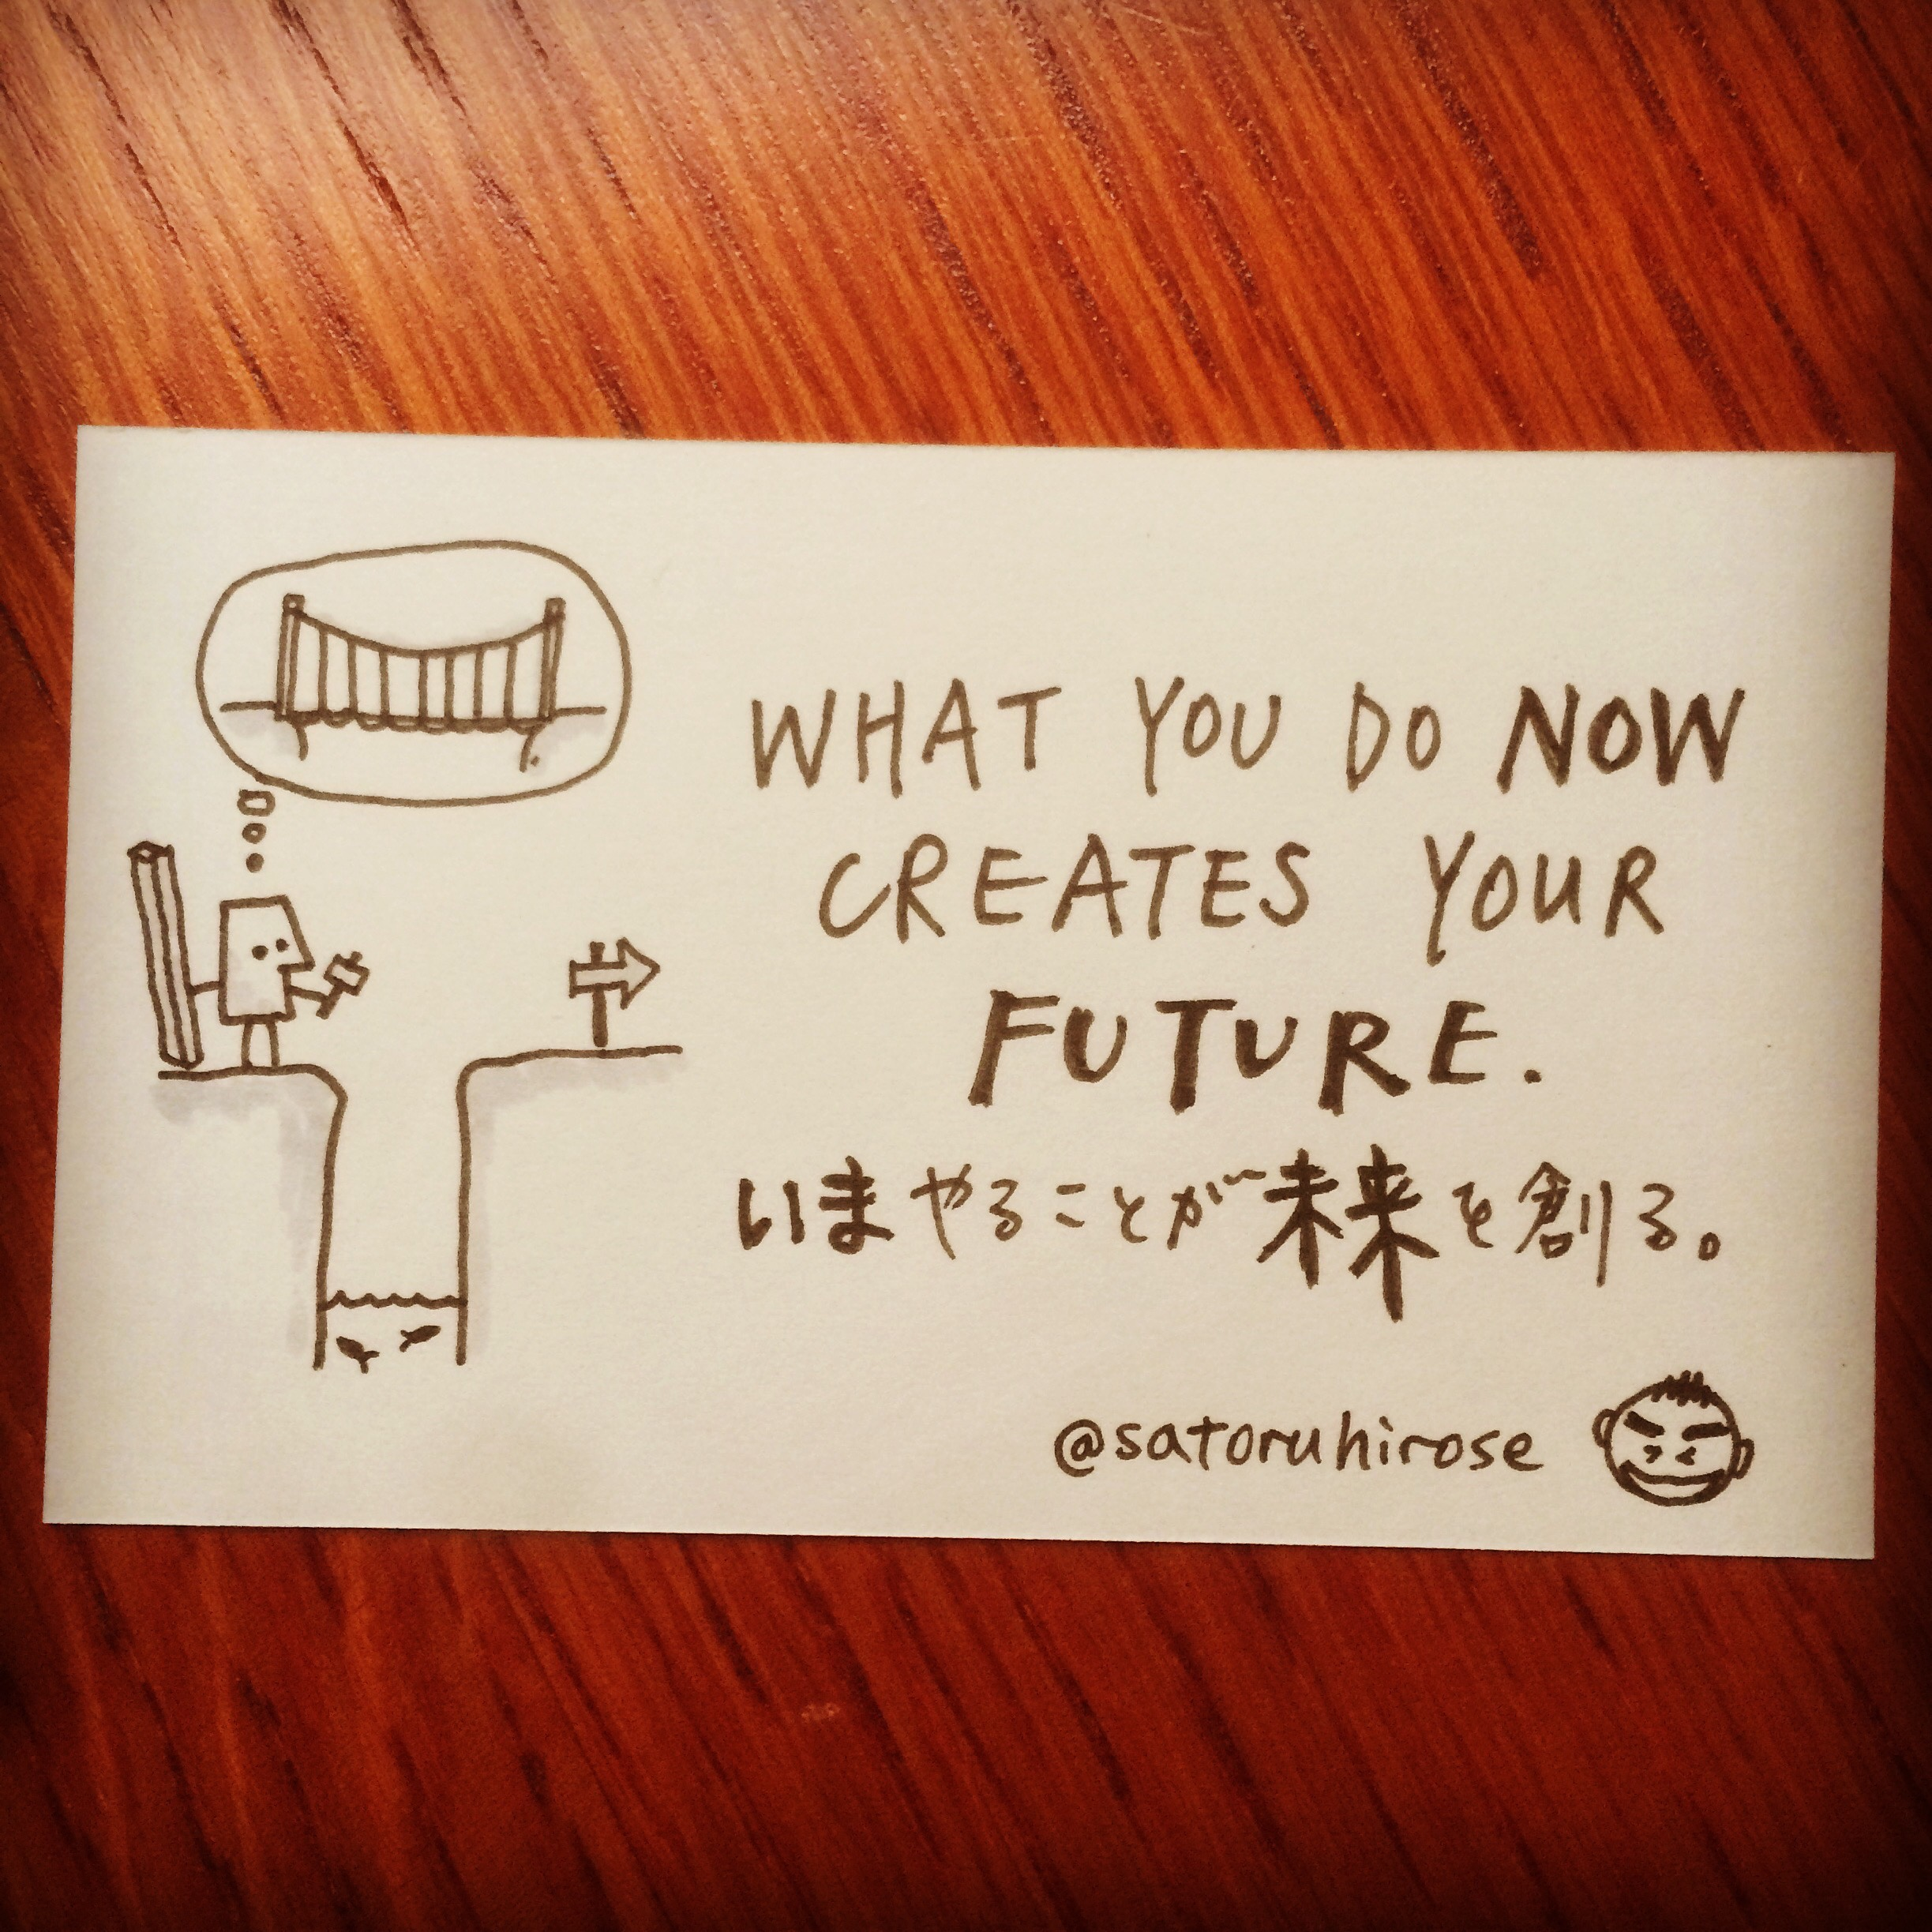 What you do now creates your future.